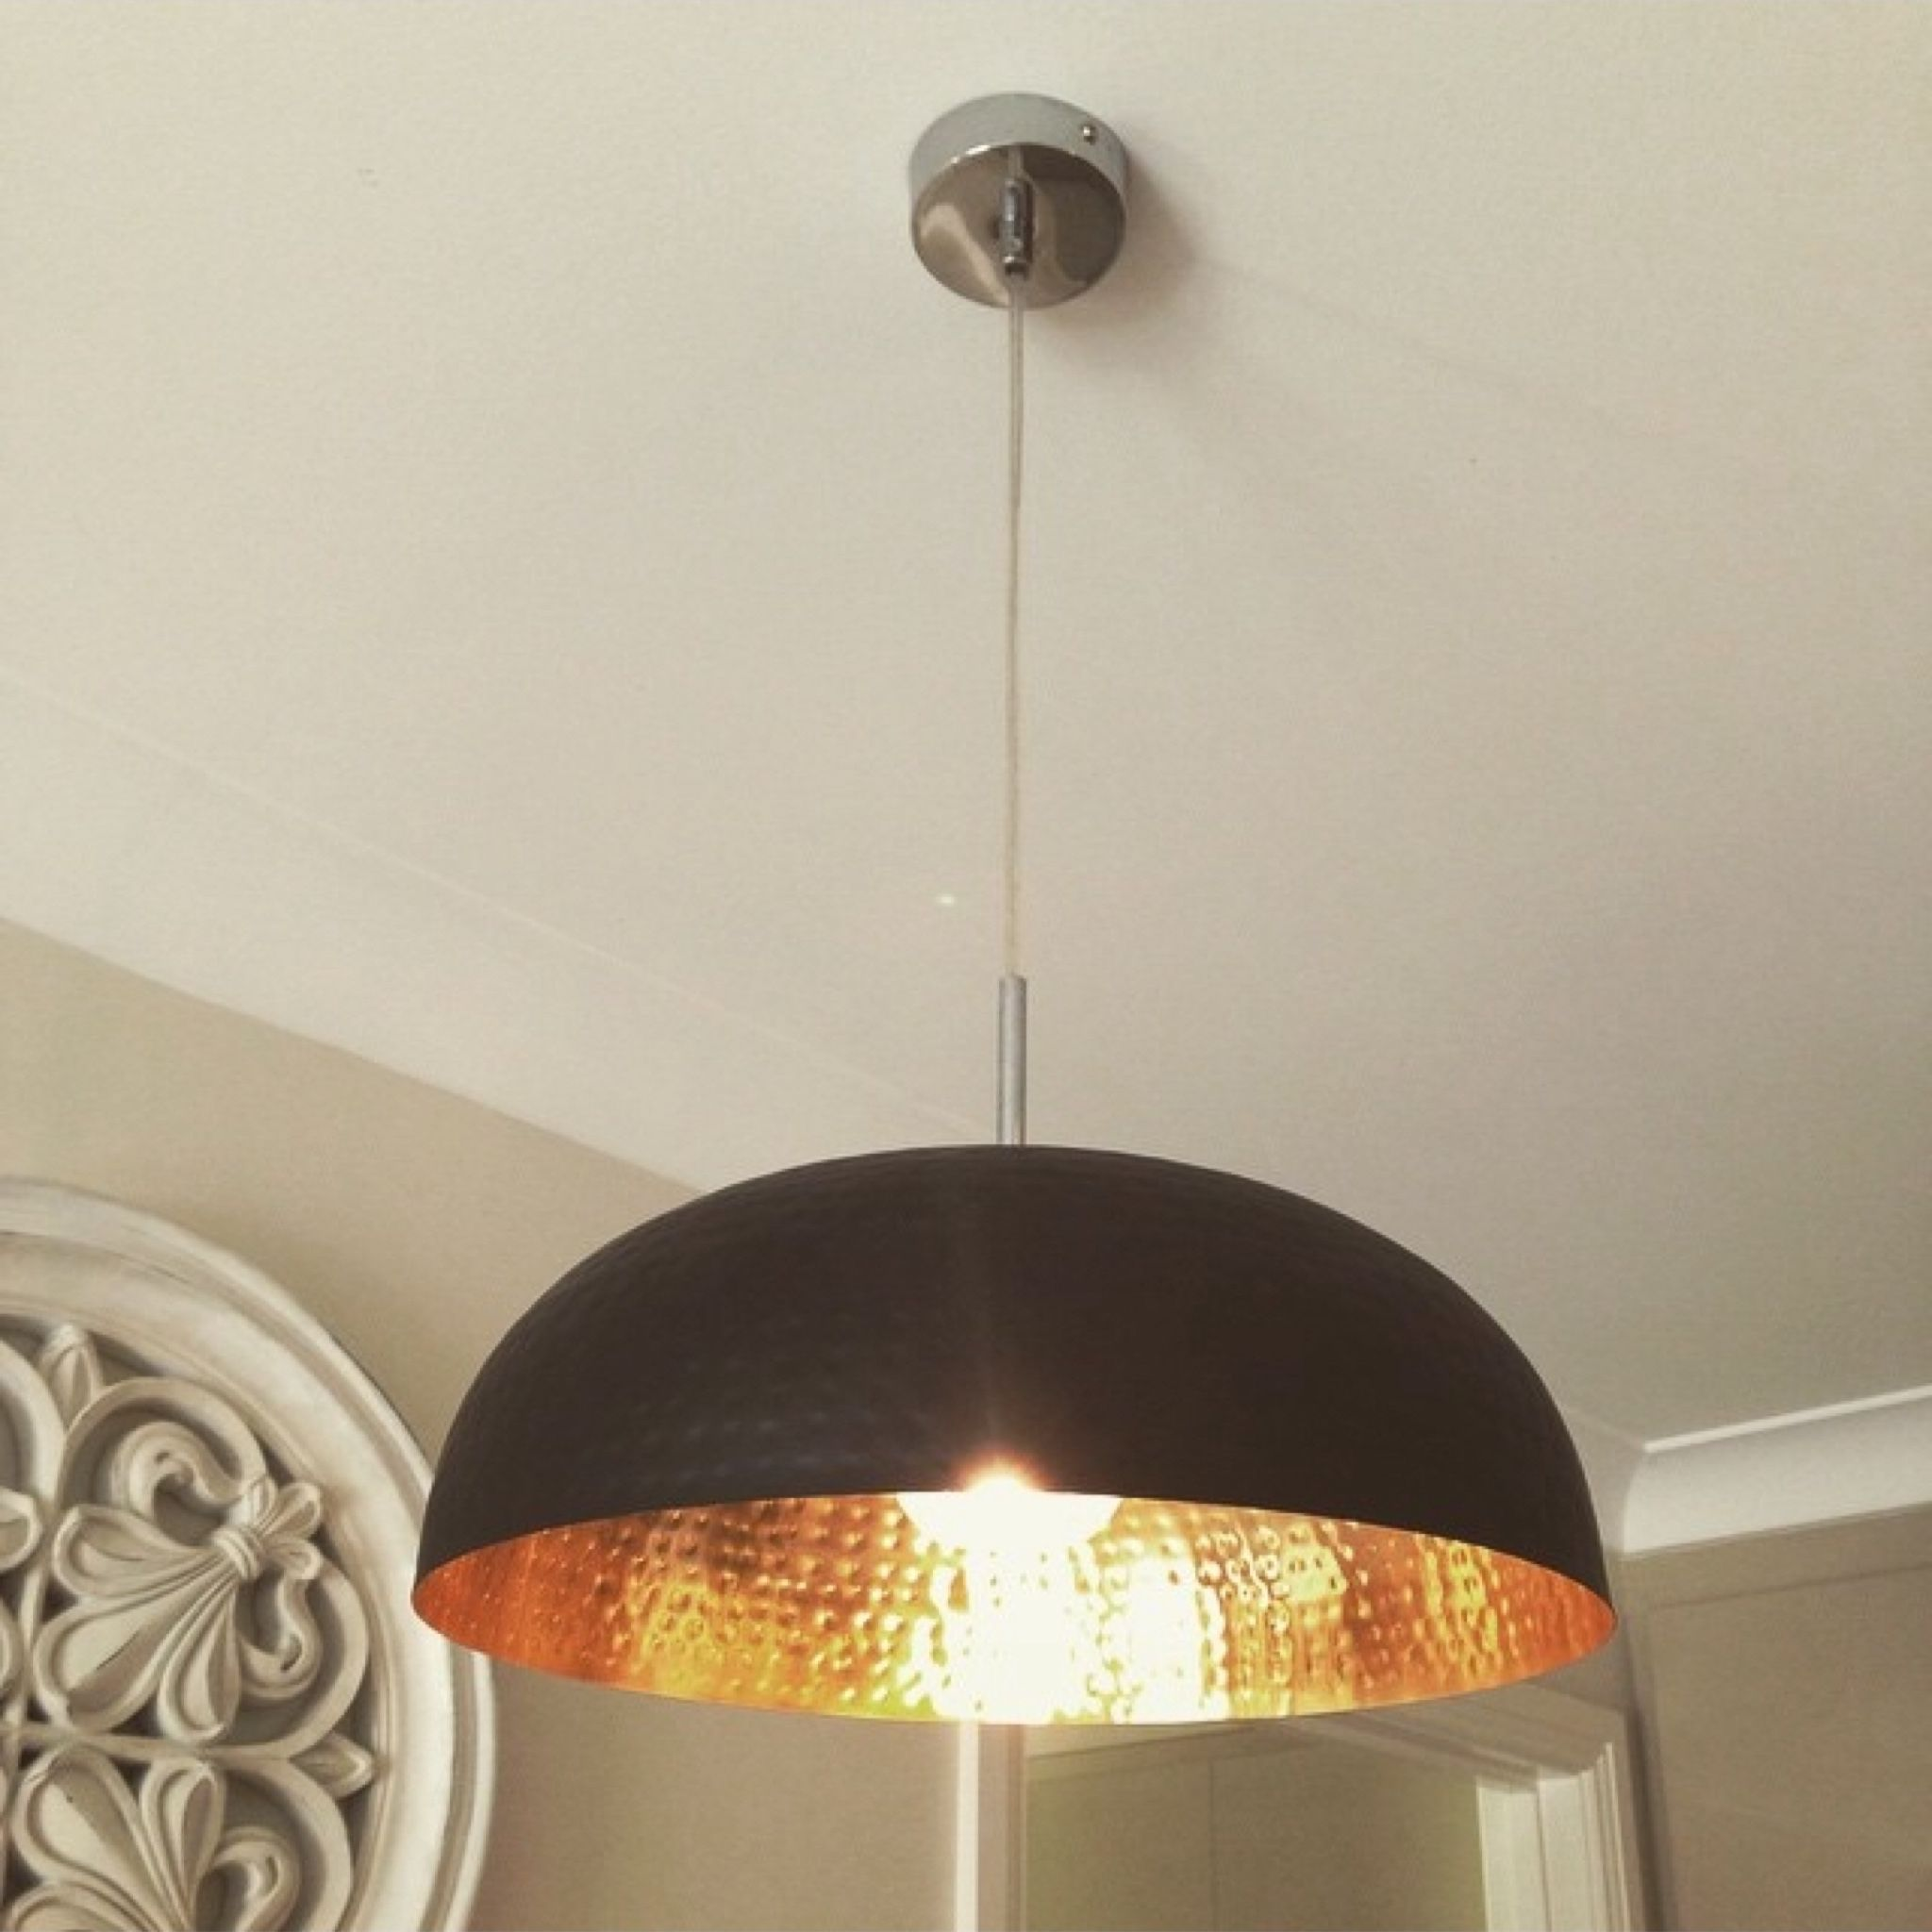 Diy Pendant Lights Australia Pin By Teresa Baker On Decor Ideas Diy Pendant Light Kmart Home